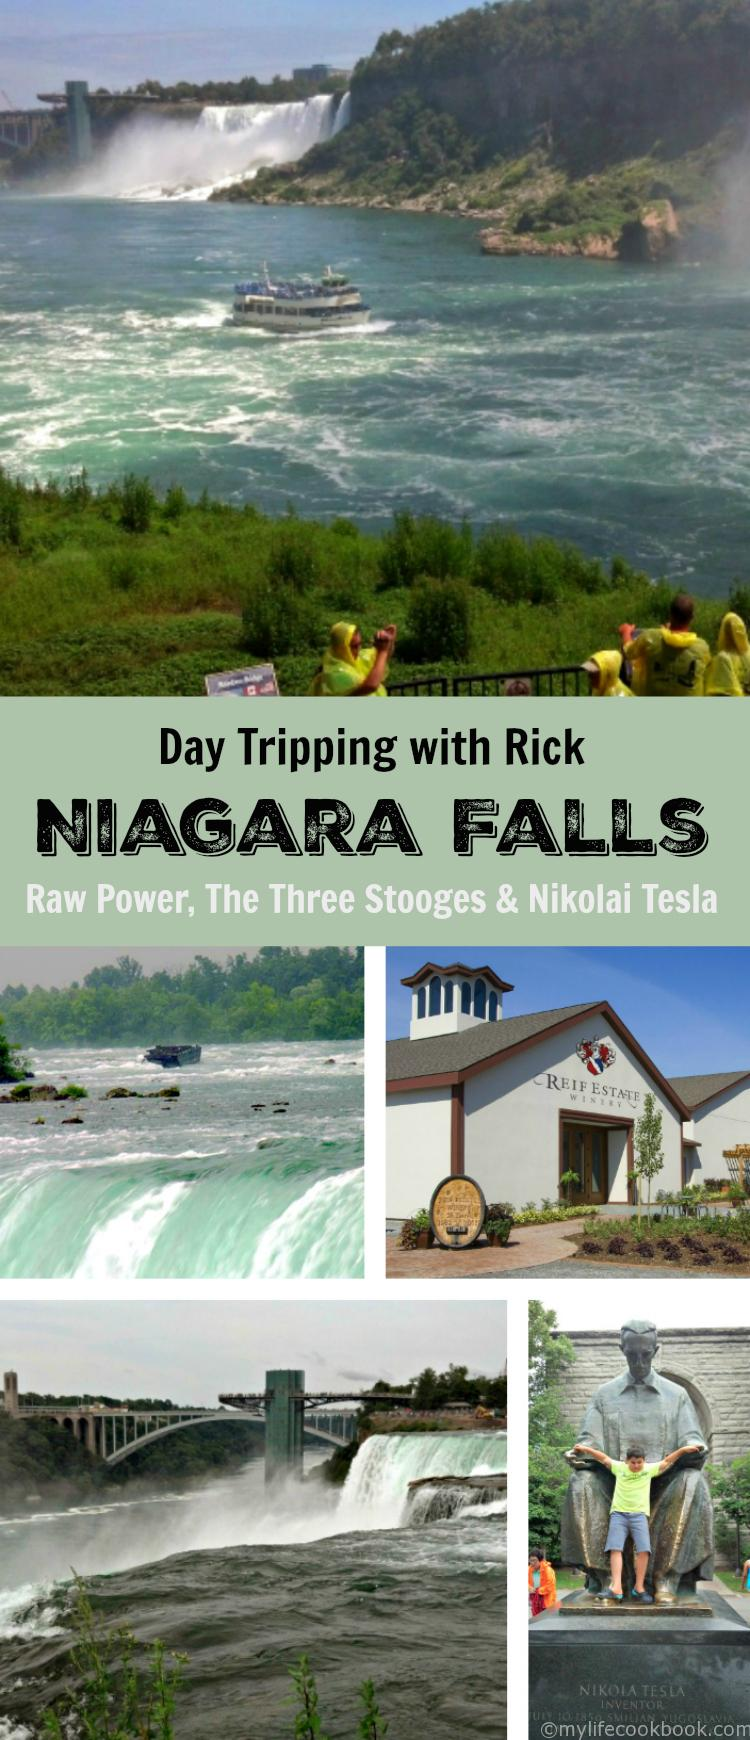 Enjoy a lovely day trip around Niagara falls with Rick.